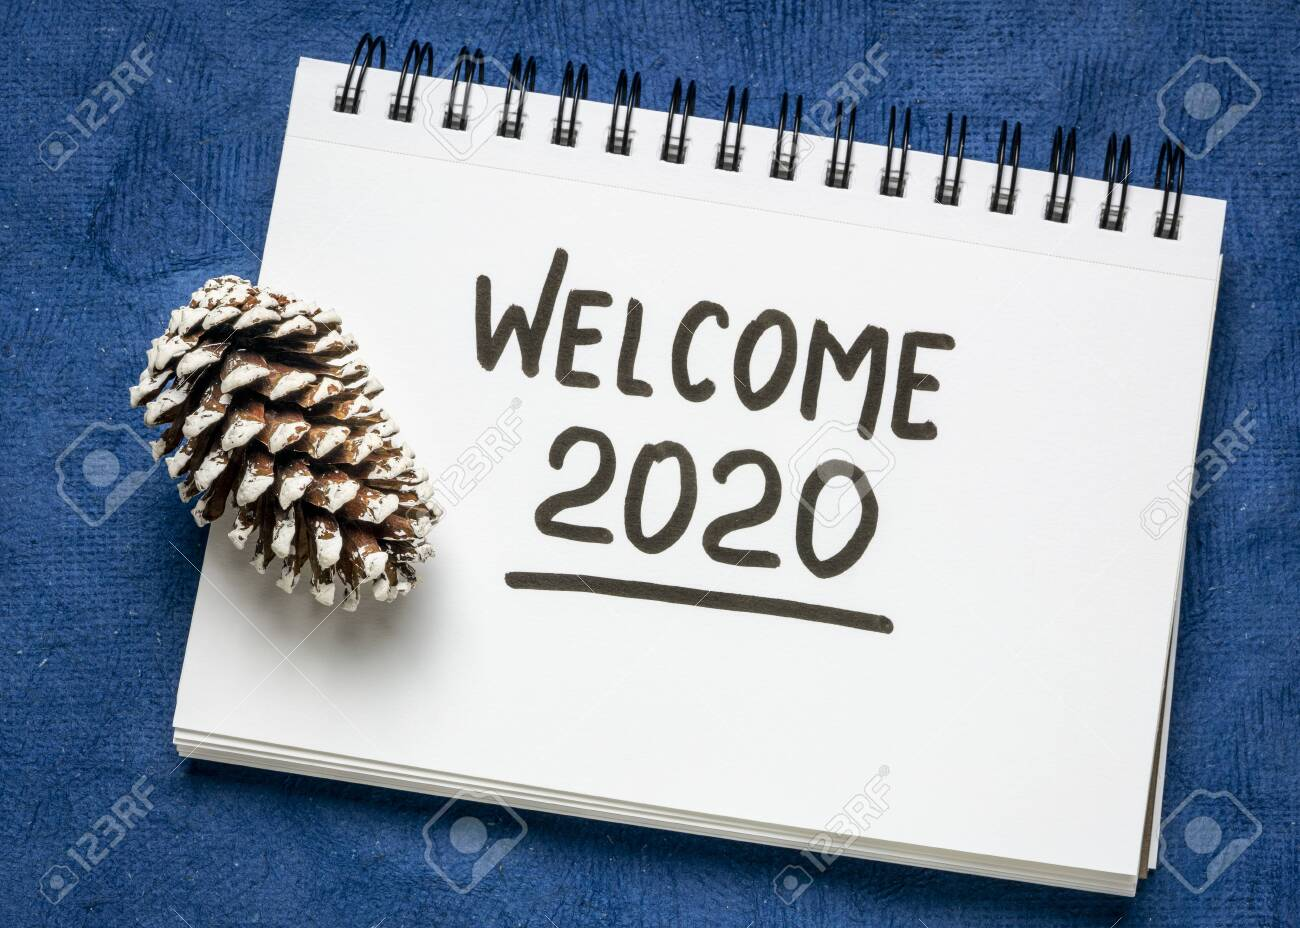 welcome 2020 handwriting in sketchbook with a frosty pine cone, New Year concept - 135817390